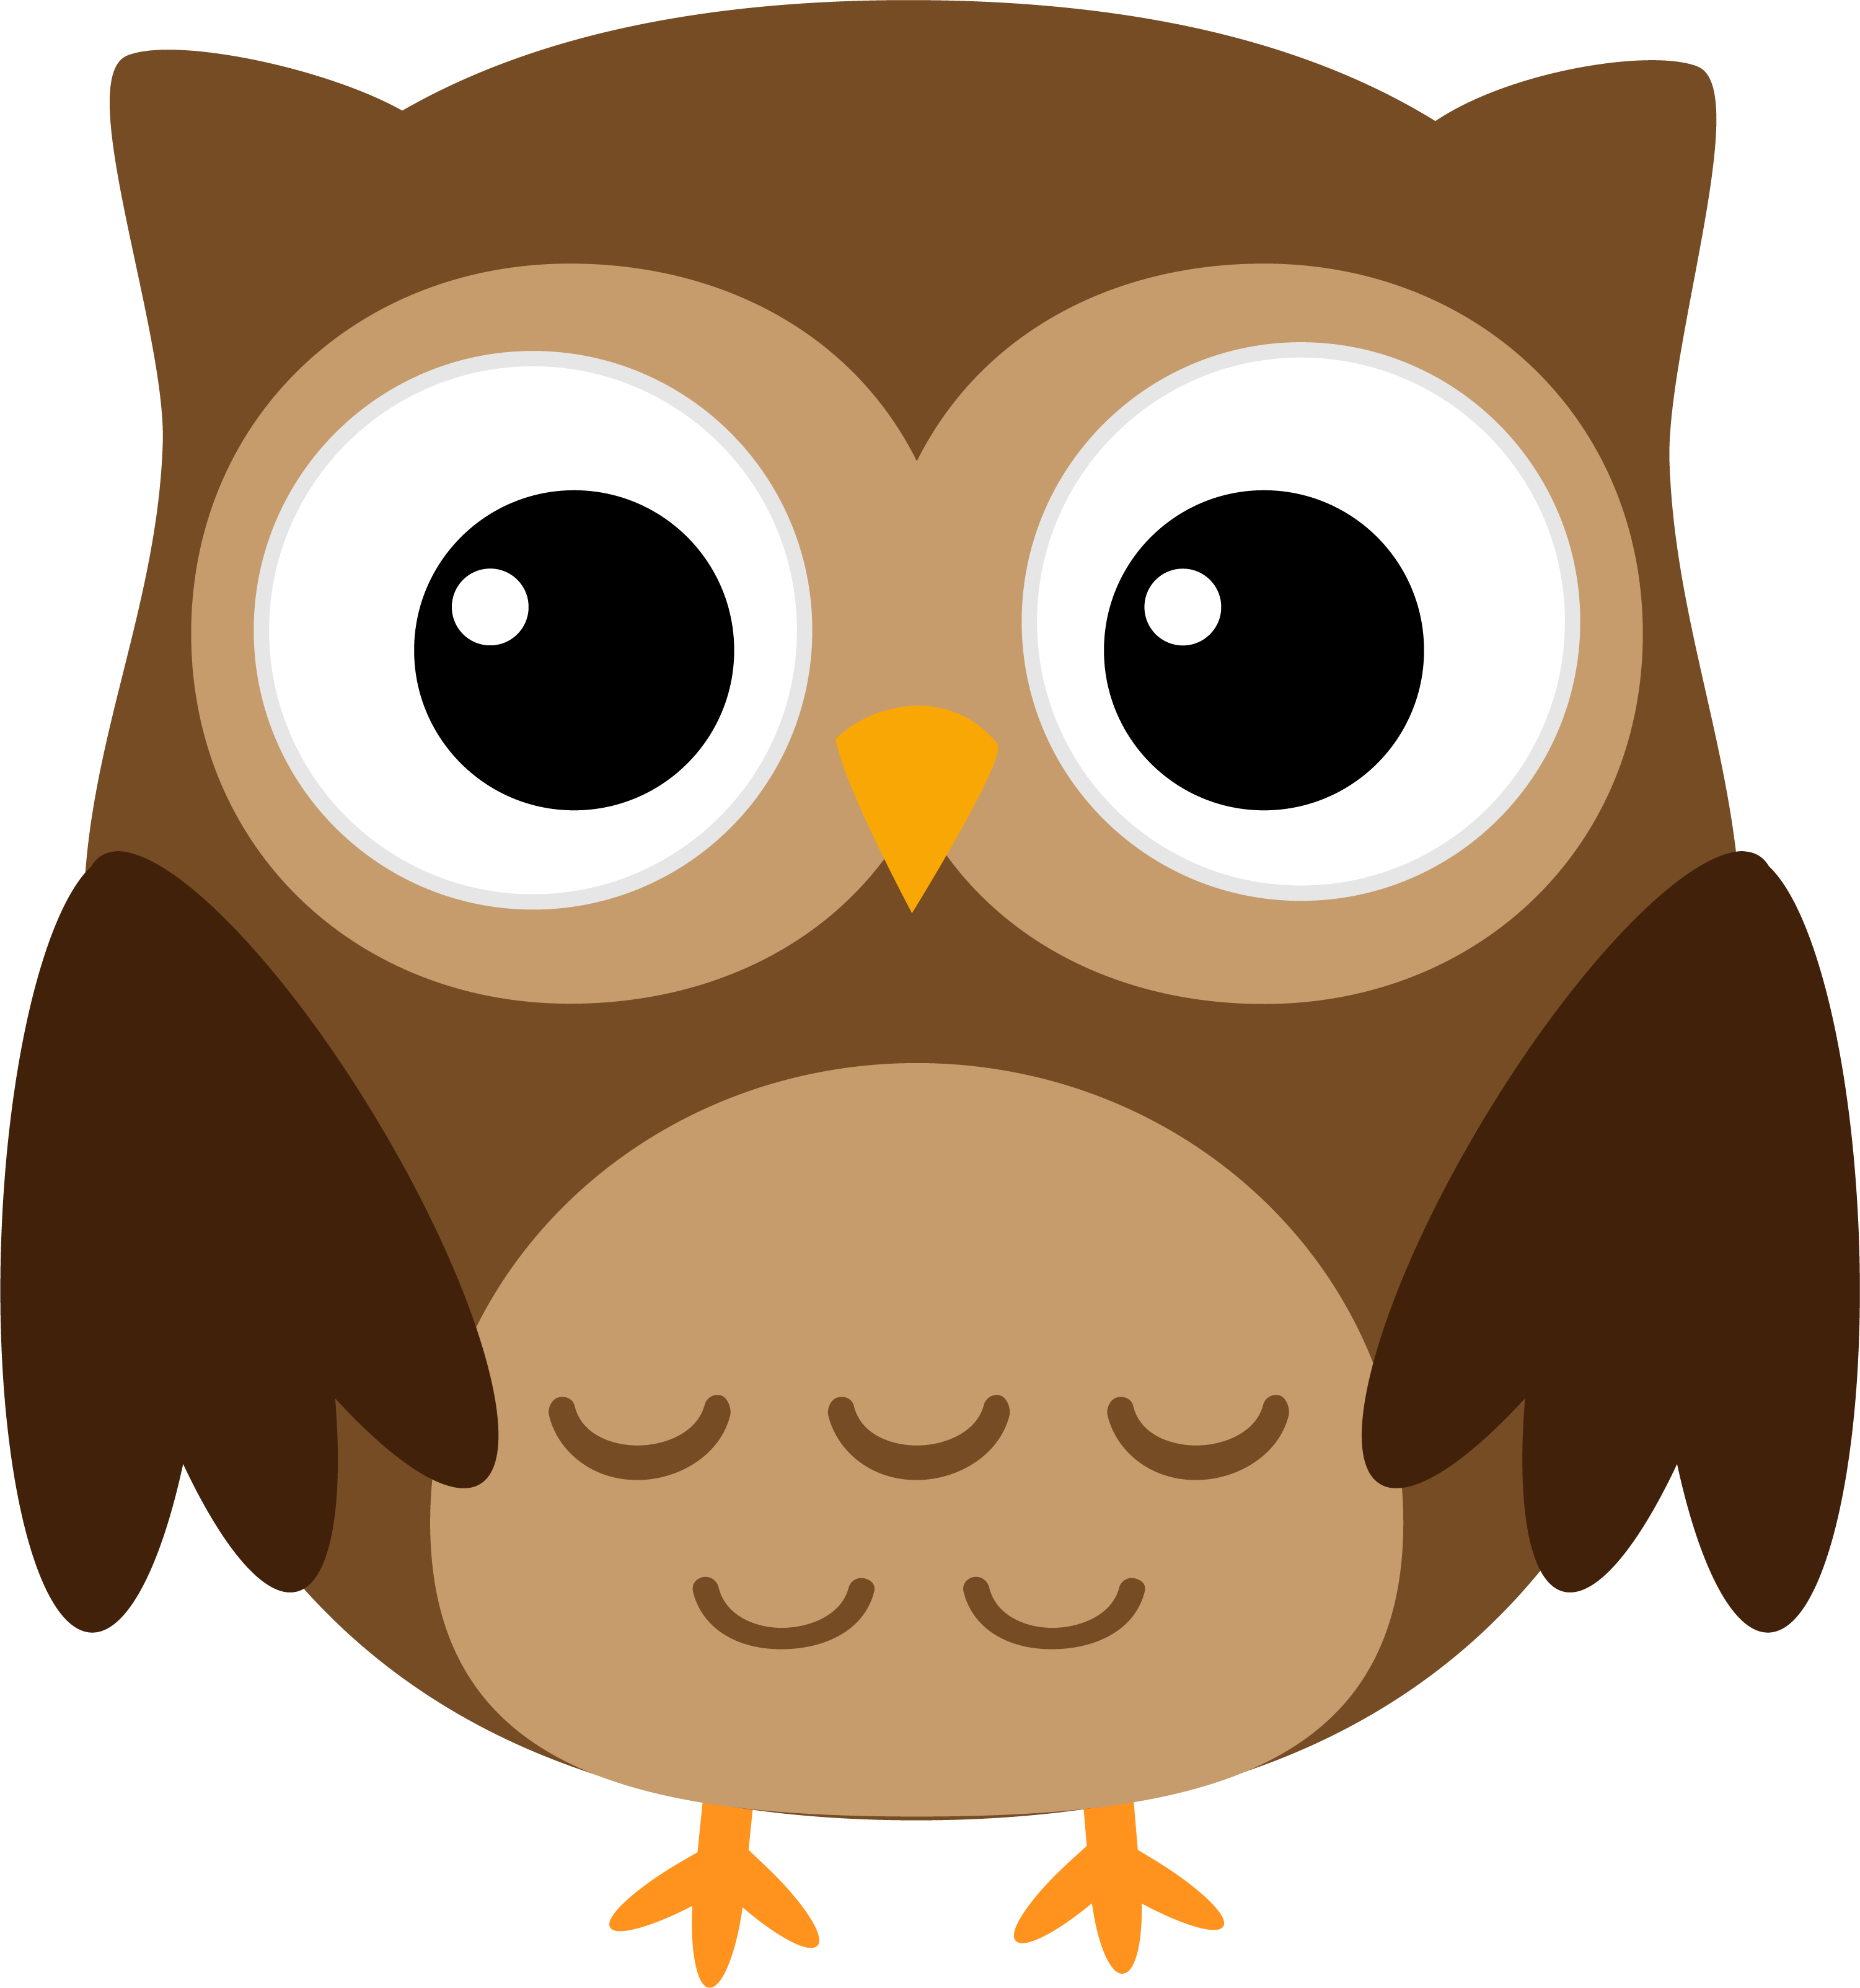 Halloween png owl. Cuteness clip art brown